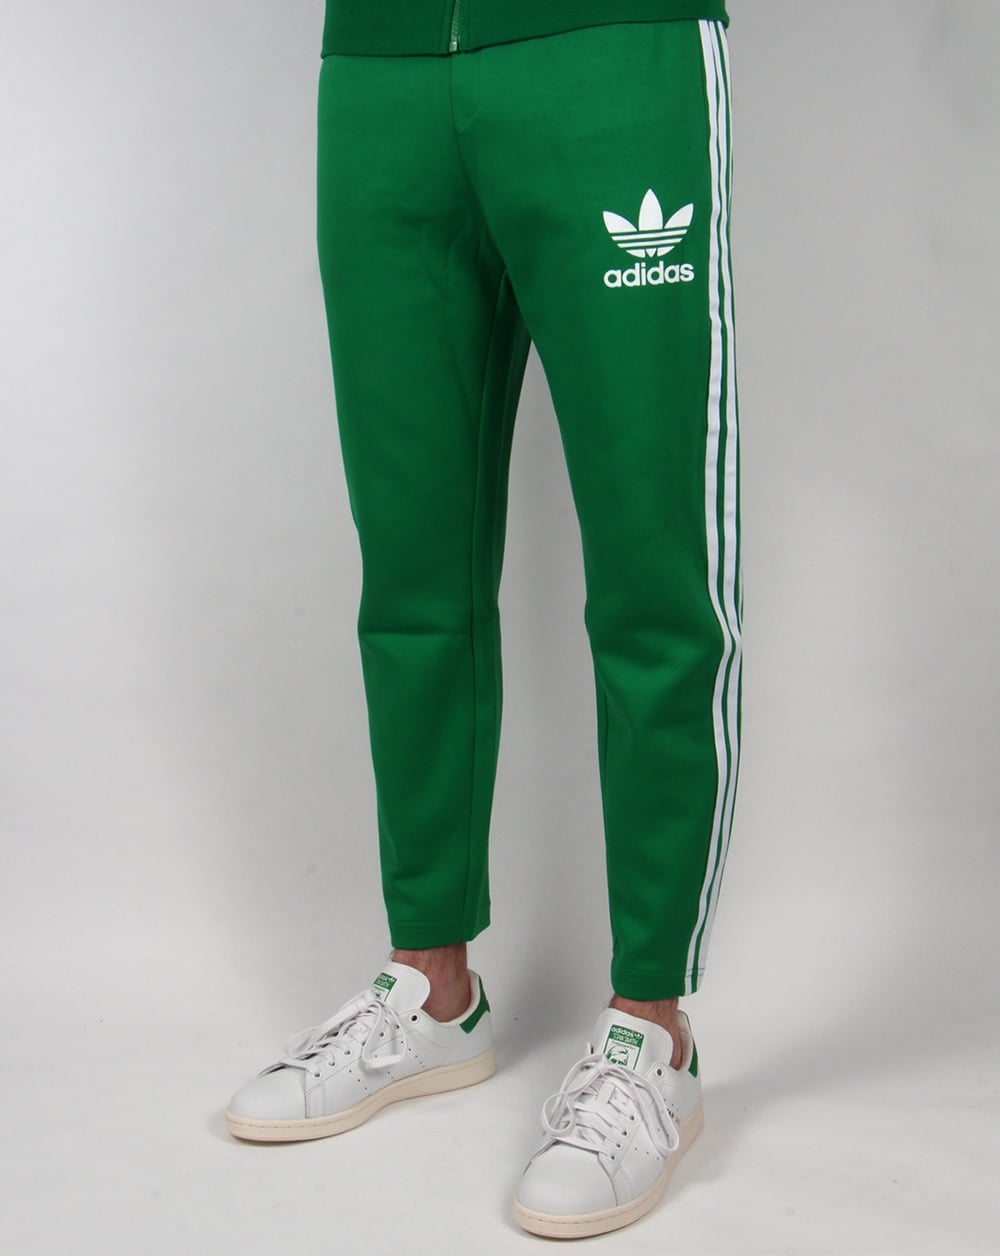 adidas originals 7 8 length track pants green white. Black Bedroom Furniture Sets. Home Design Ideas